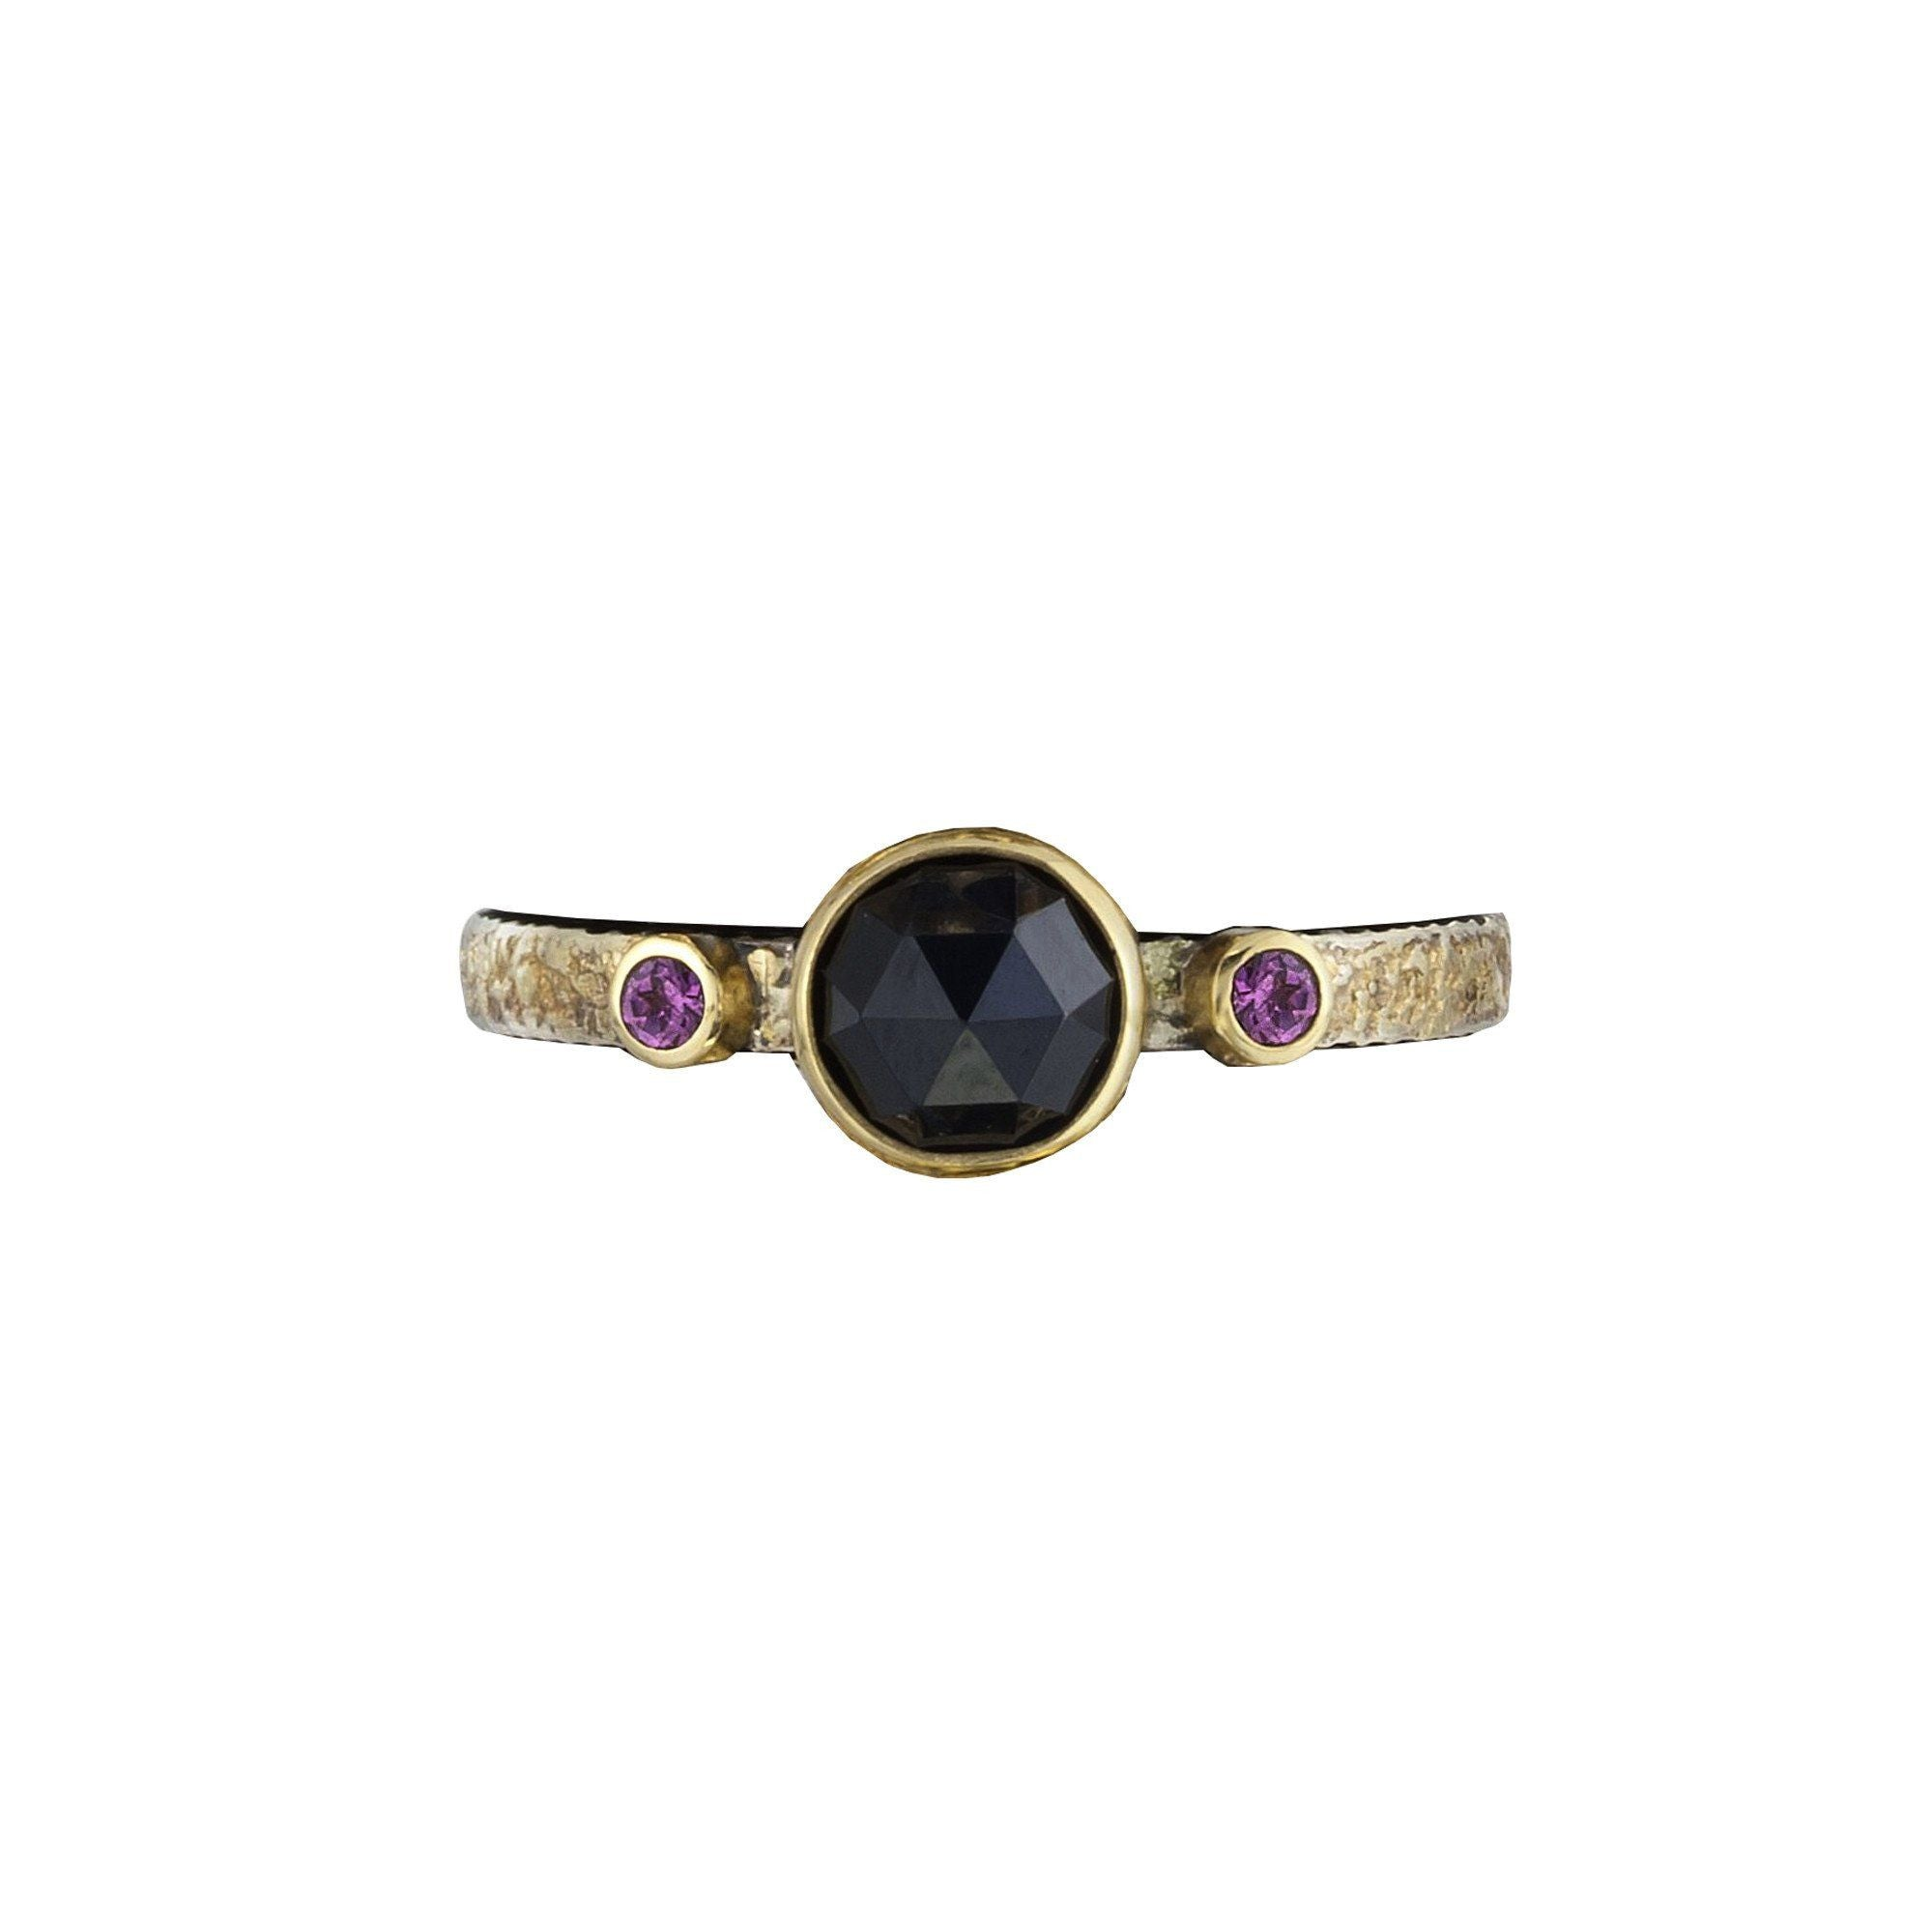 Stacker with rose-cut black spinel